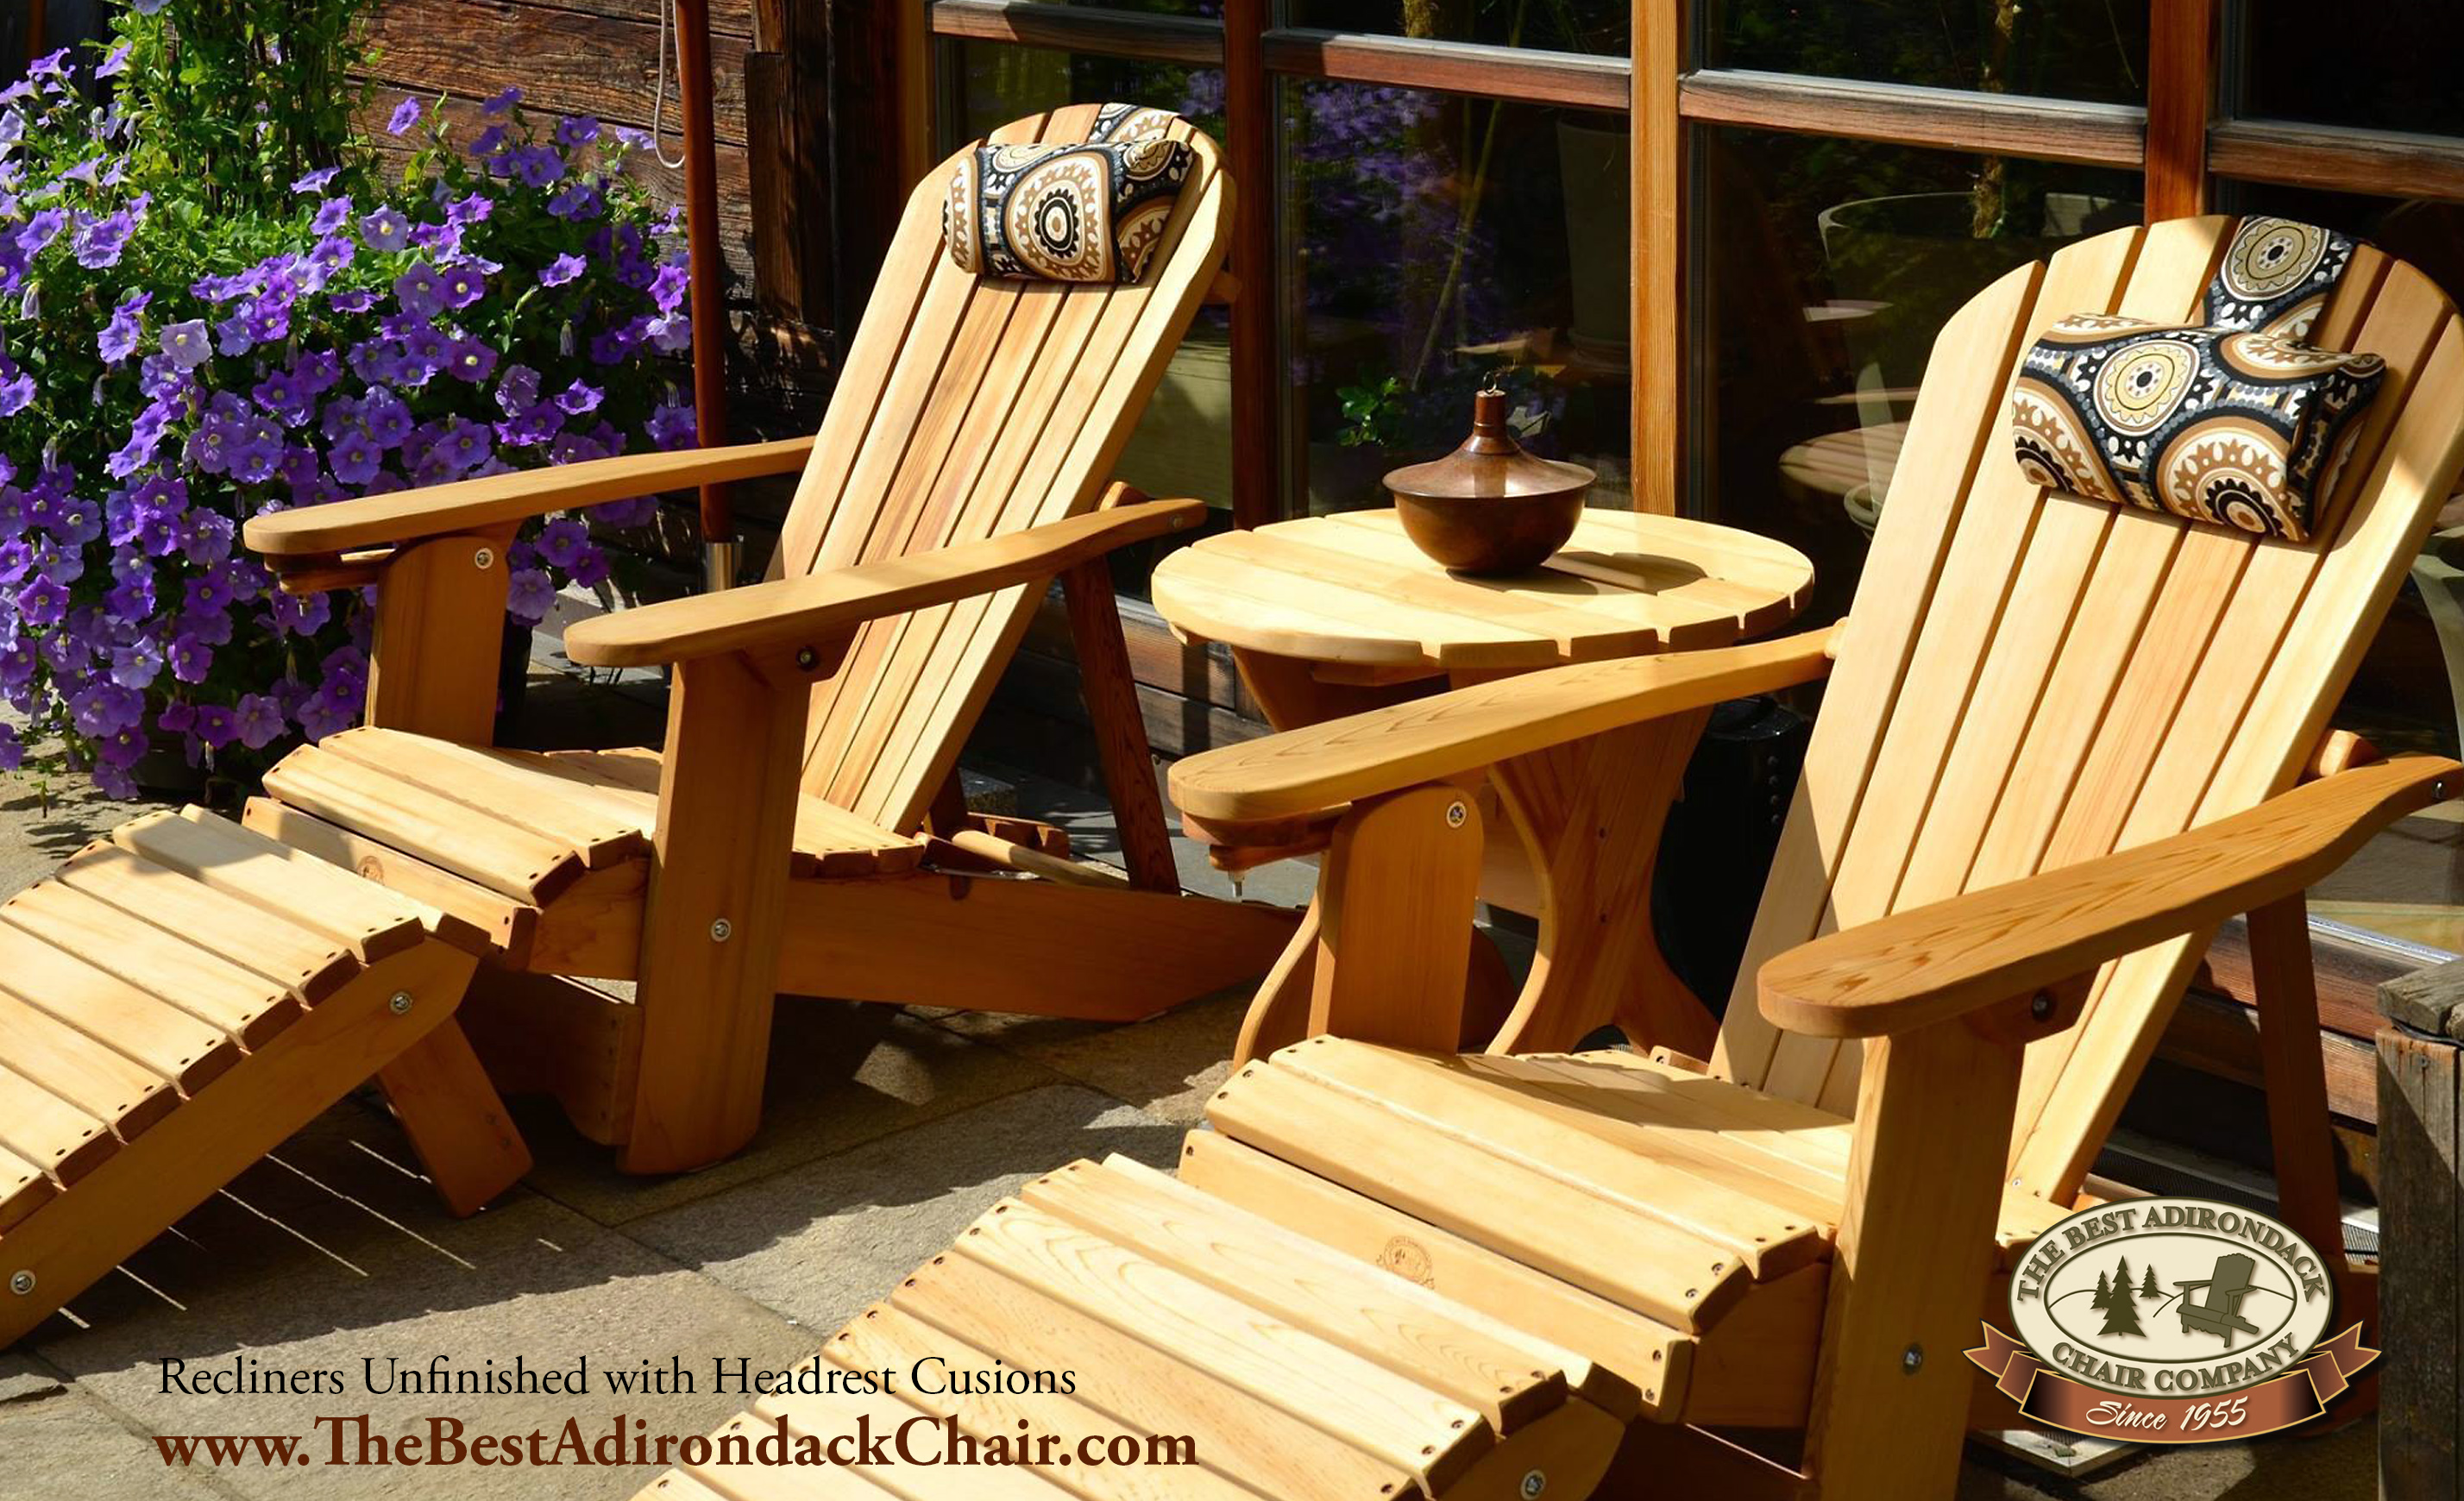 the best adirondack chair company launches new 4 position reclining adirondack chair. Black Bedroom Furniture Sets. Home Design Ideas